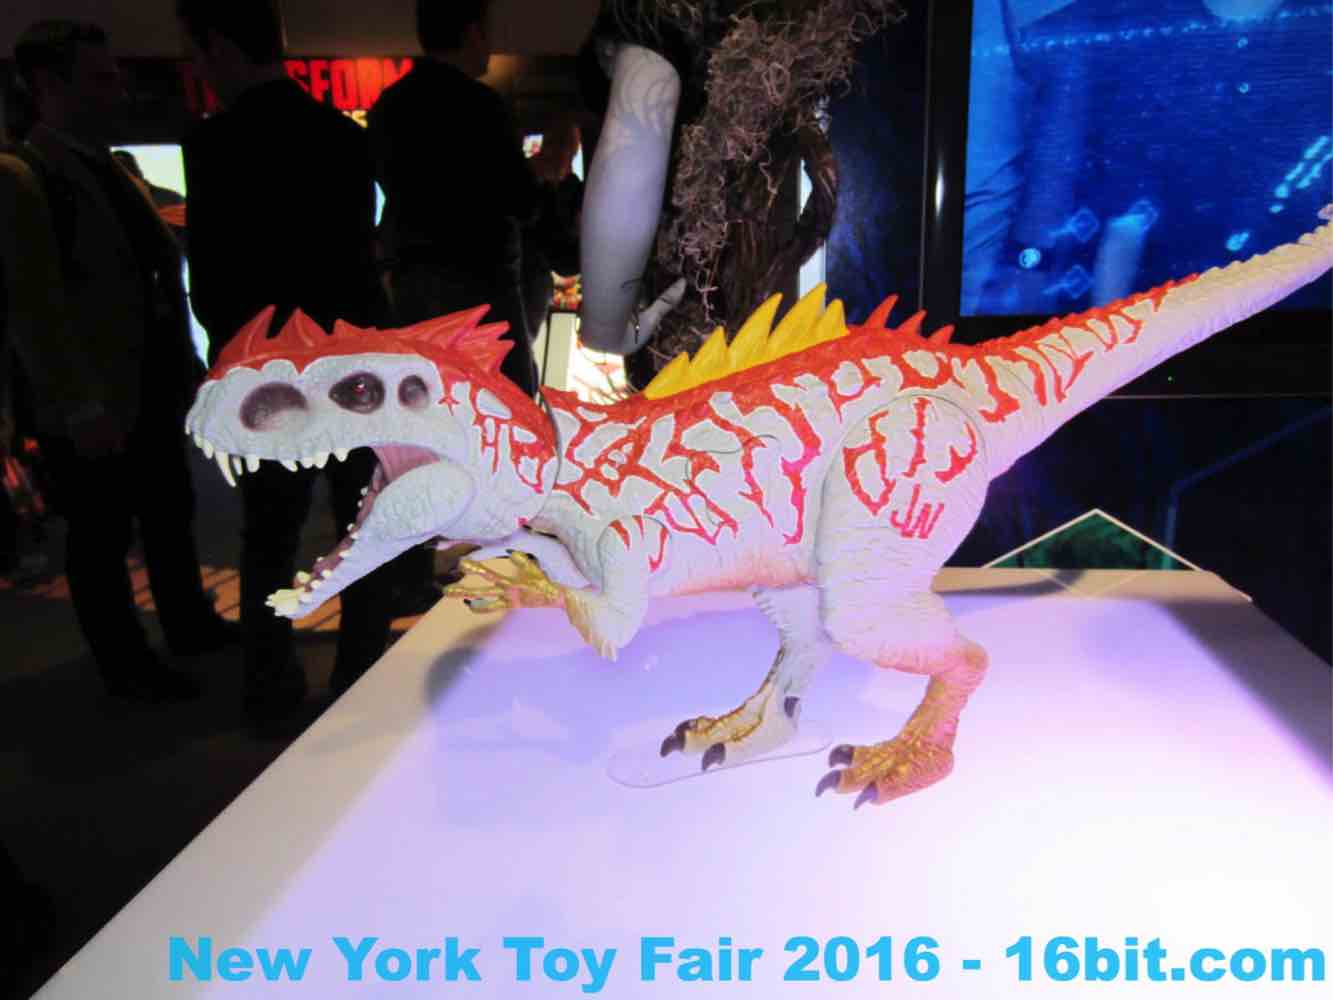 16bit Toy Fair Coverage of Hasbro Jurassic World Toys from